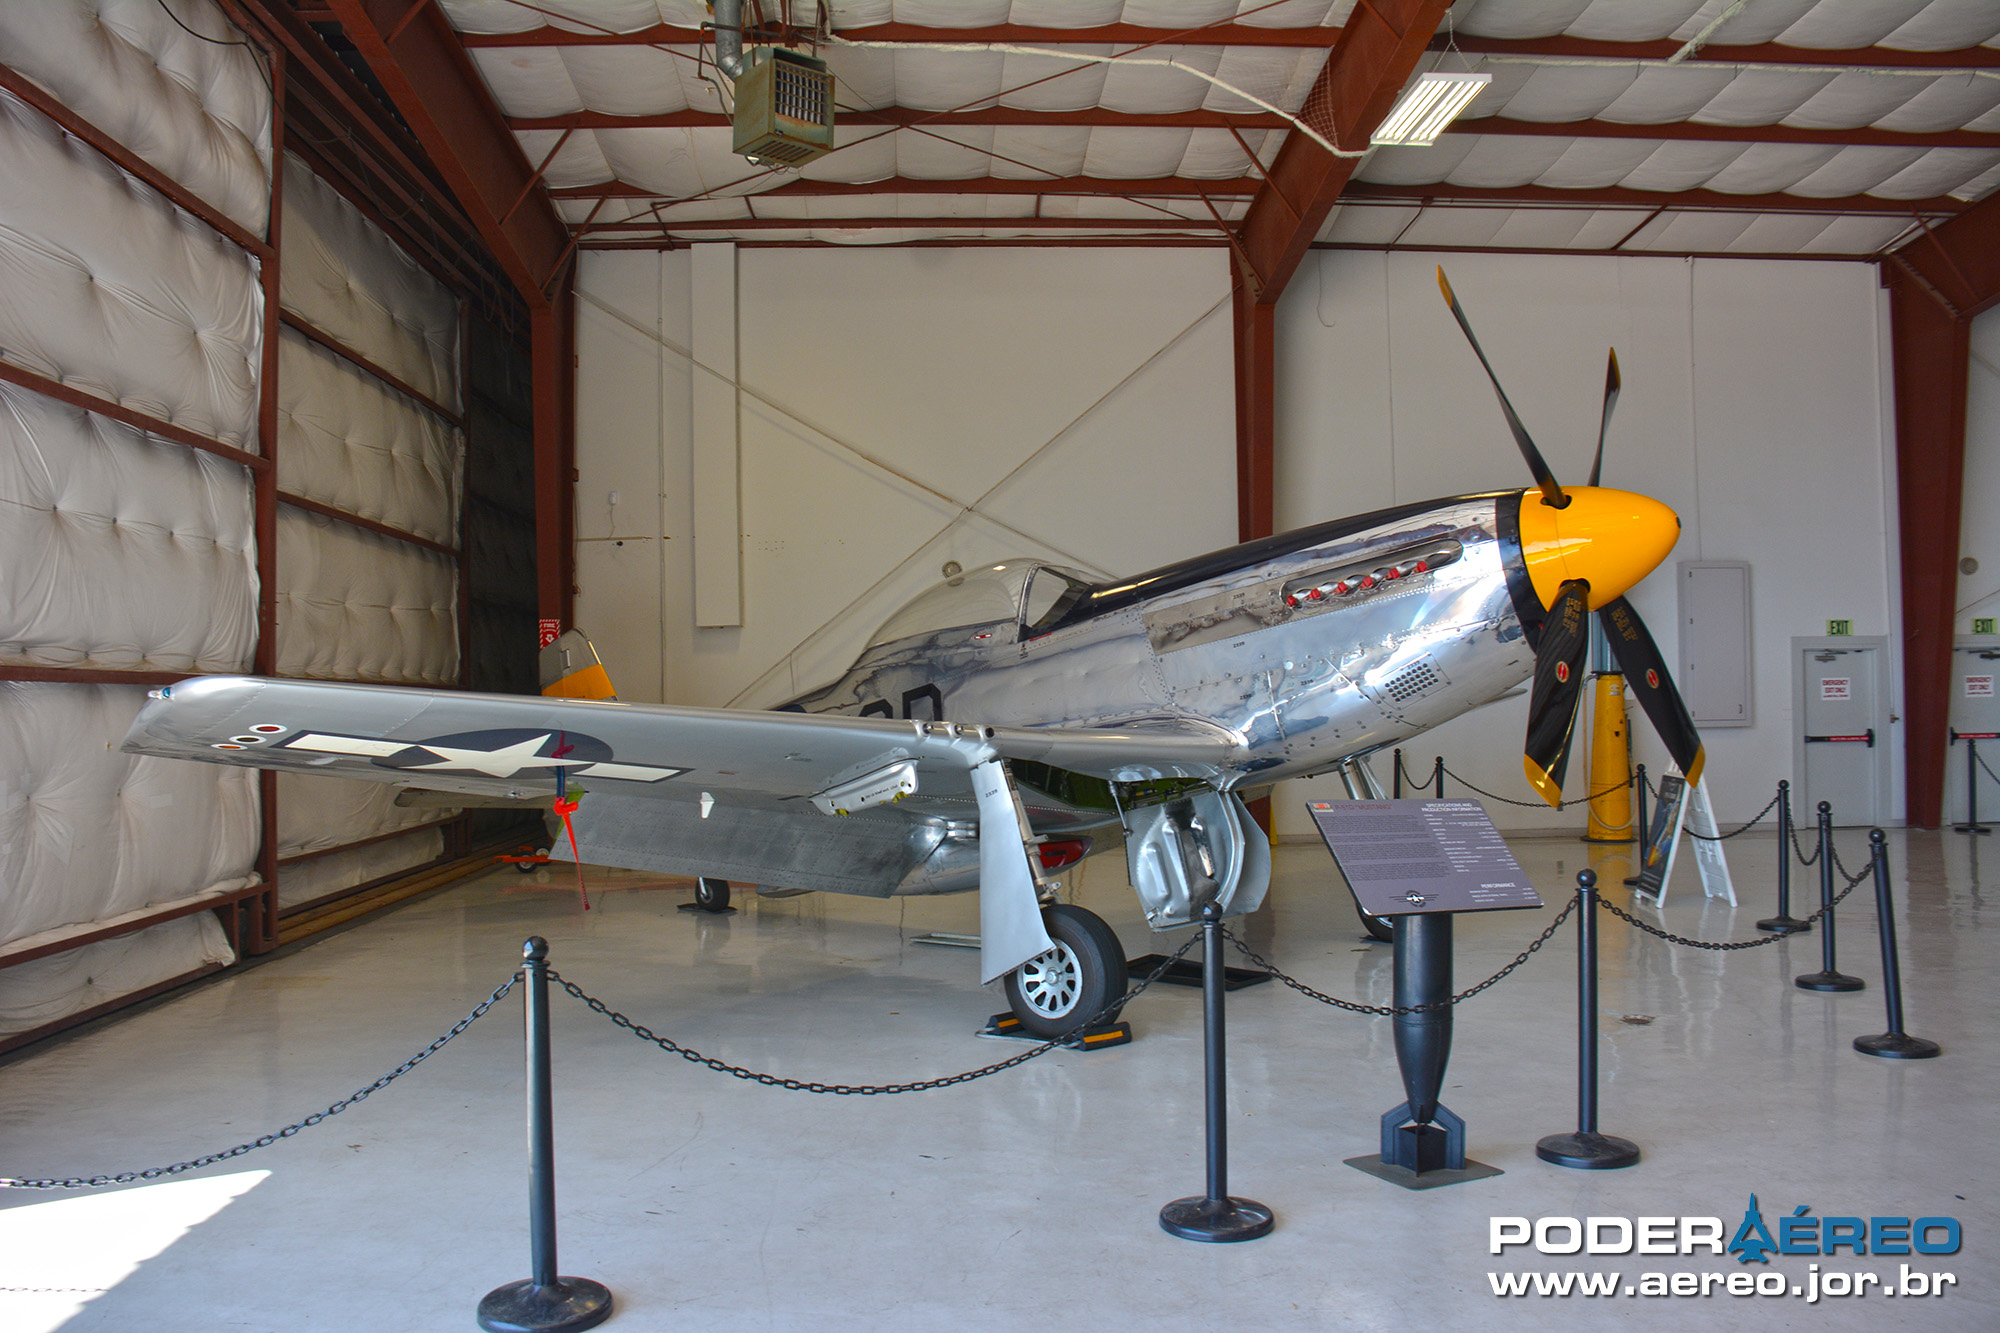 Cavanaugh Flight Museum - 19